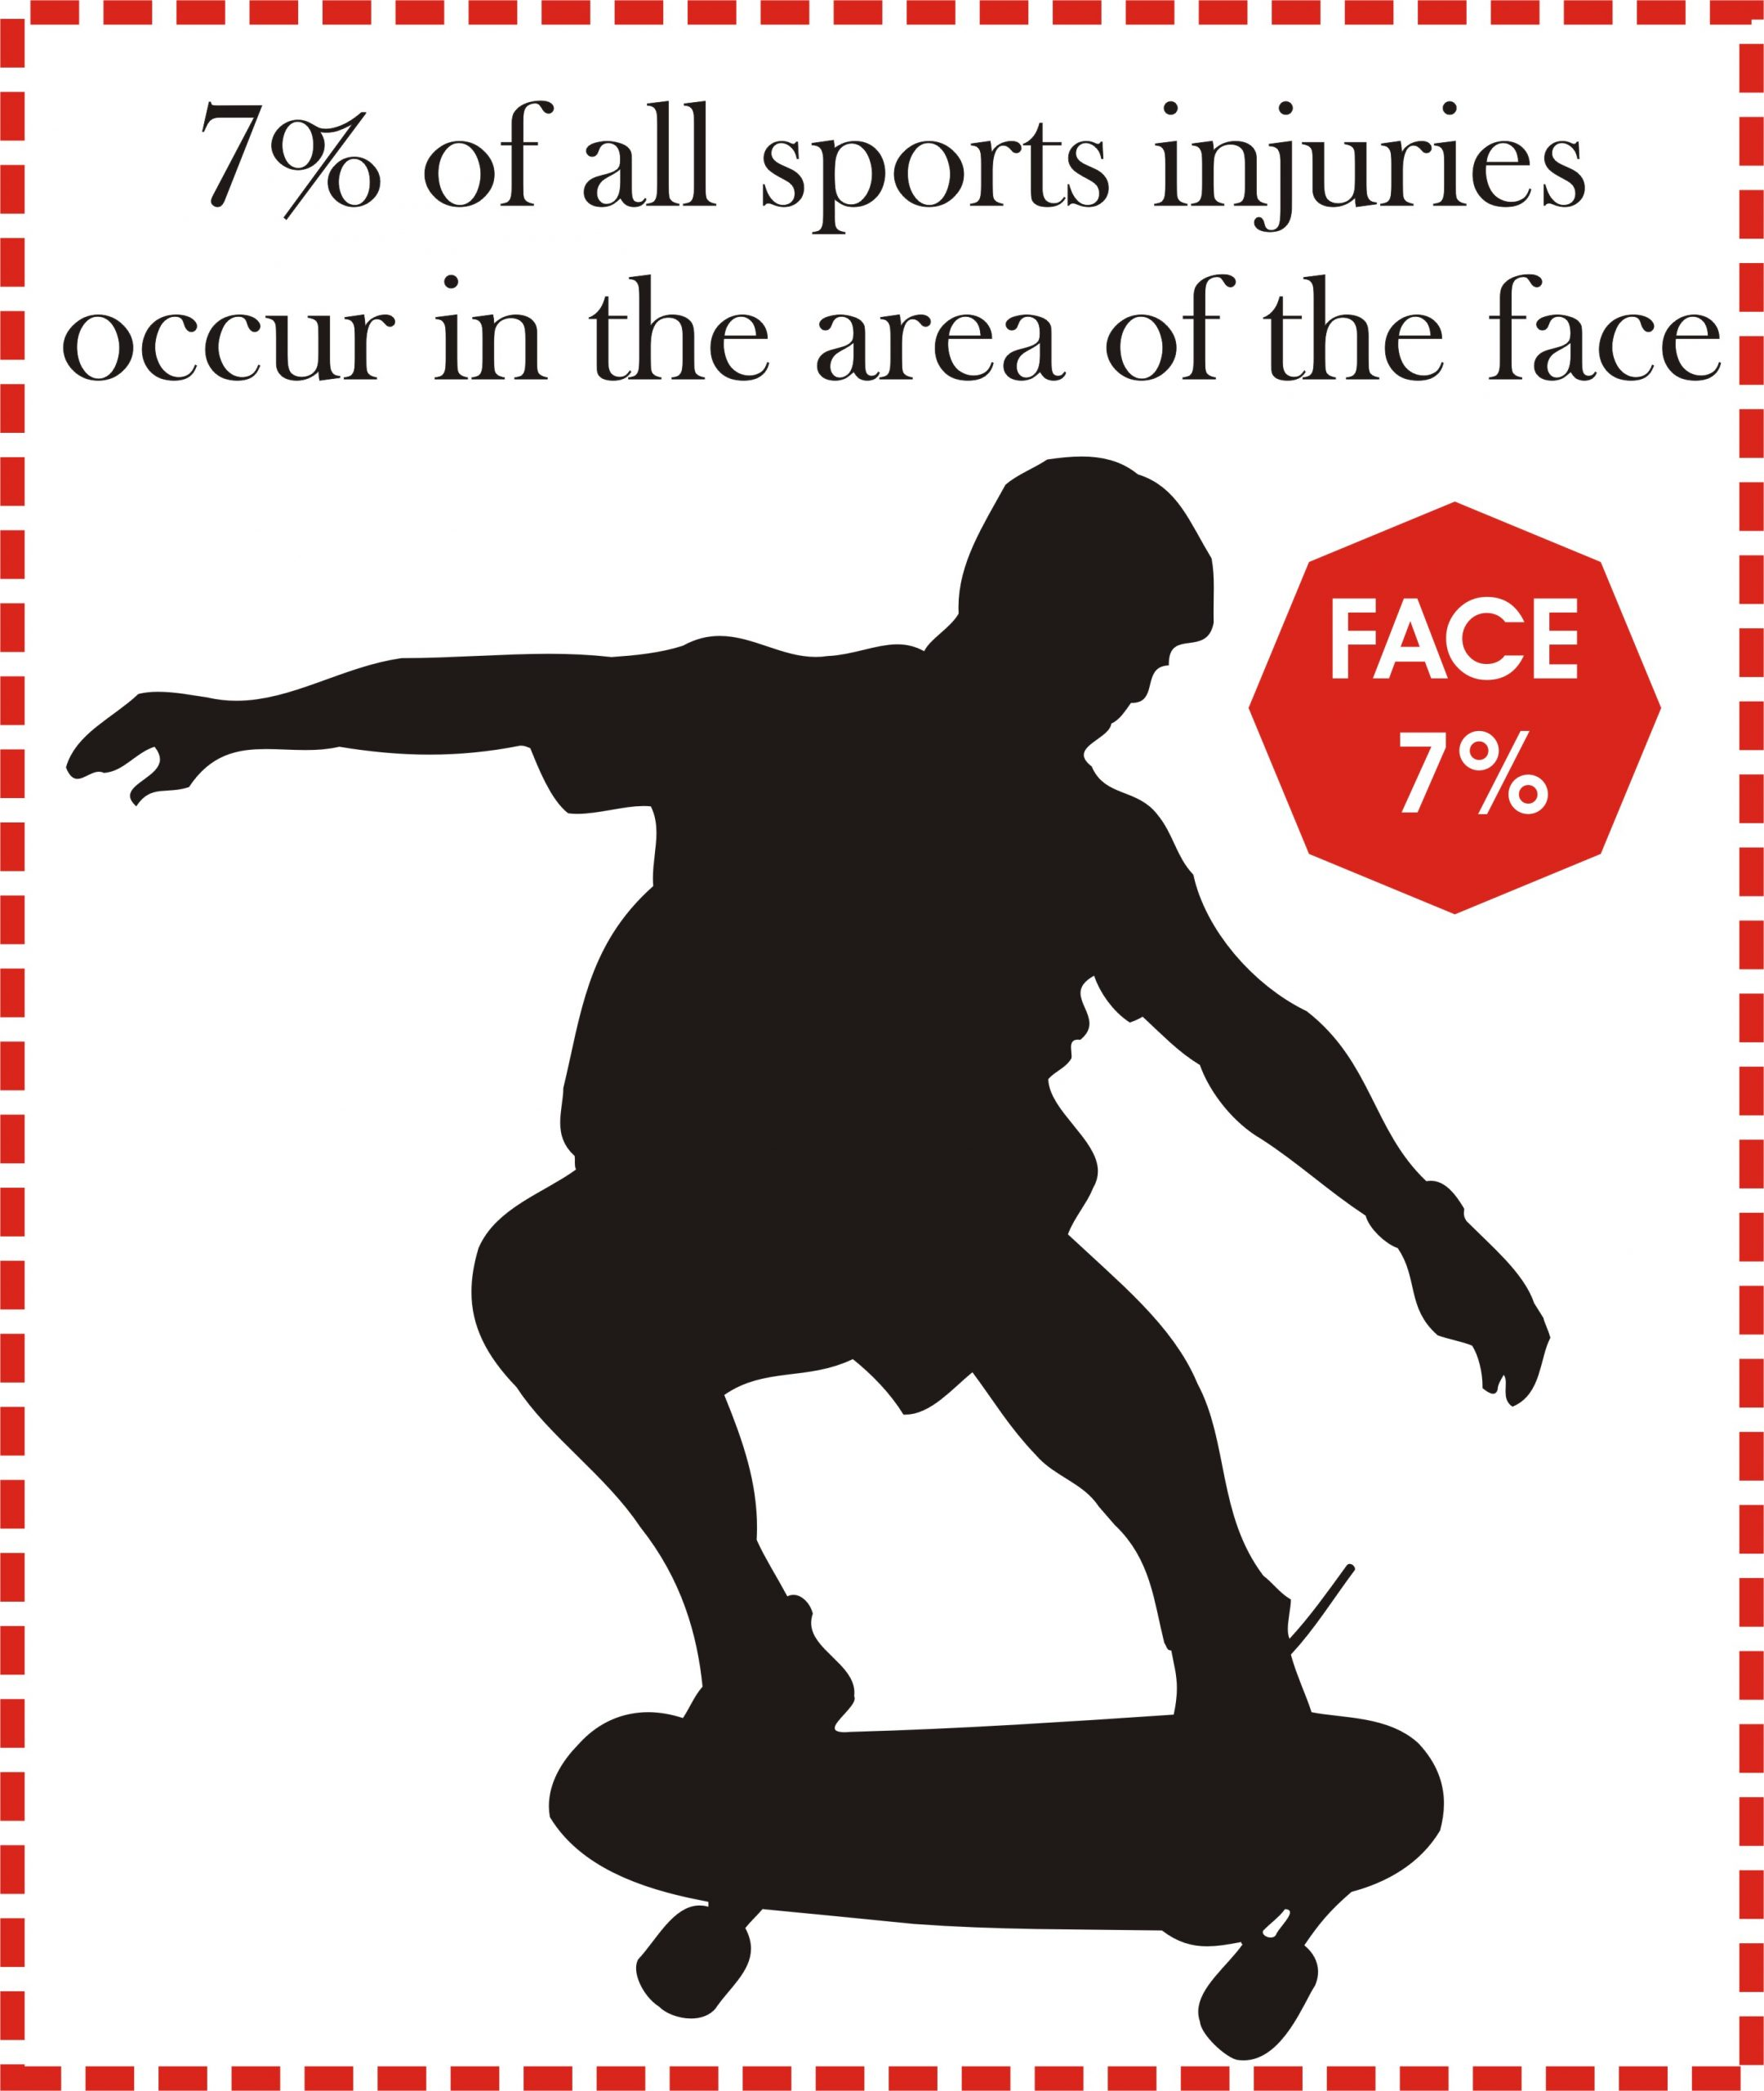 7% of all sports injuries are in the area of the face